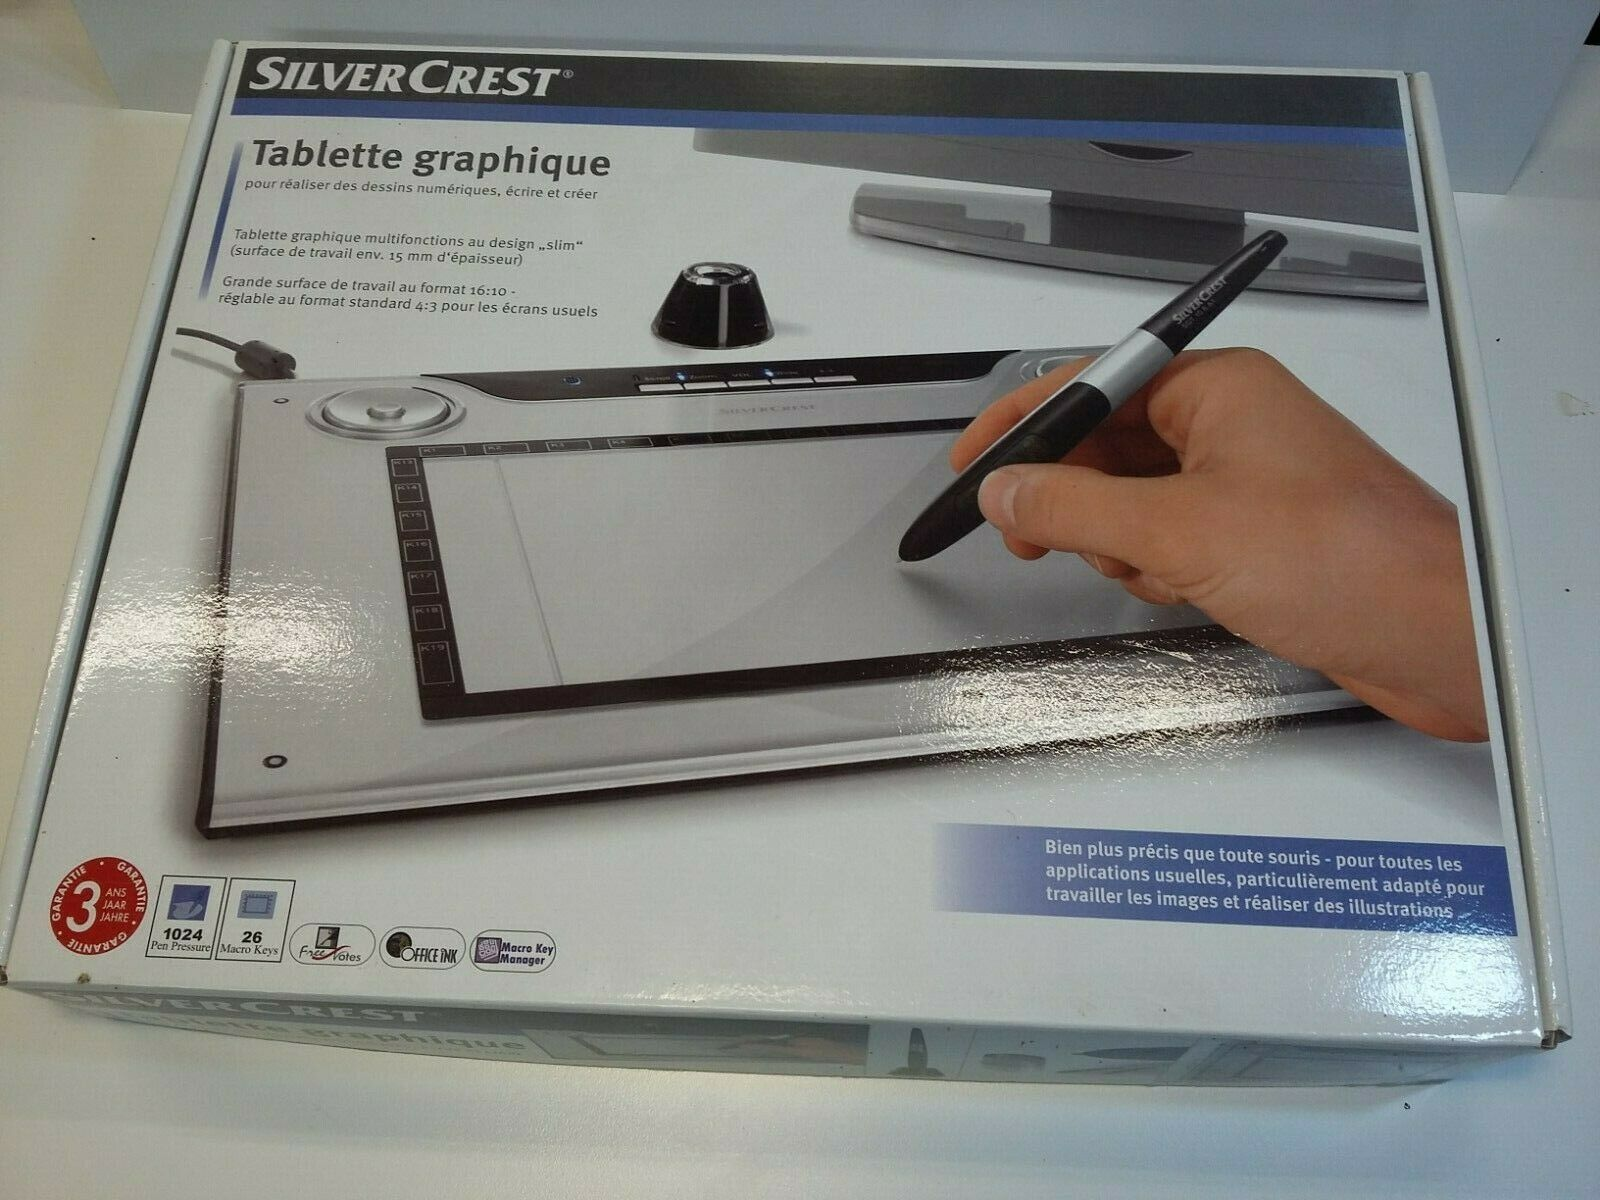 Tablette graphique silvercrest - sgt 10.6 a1